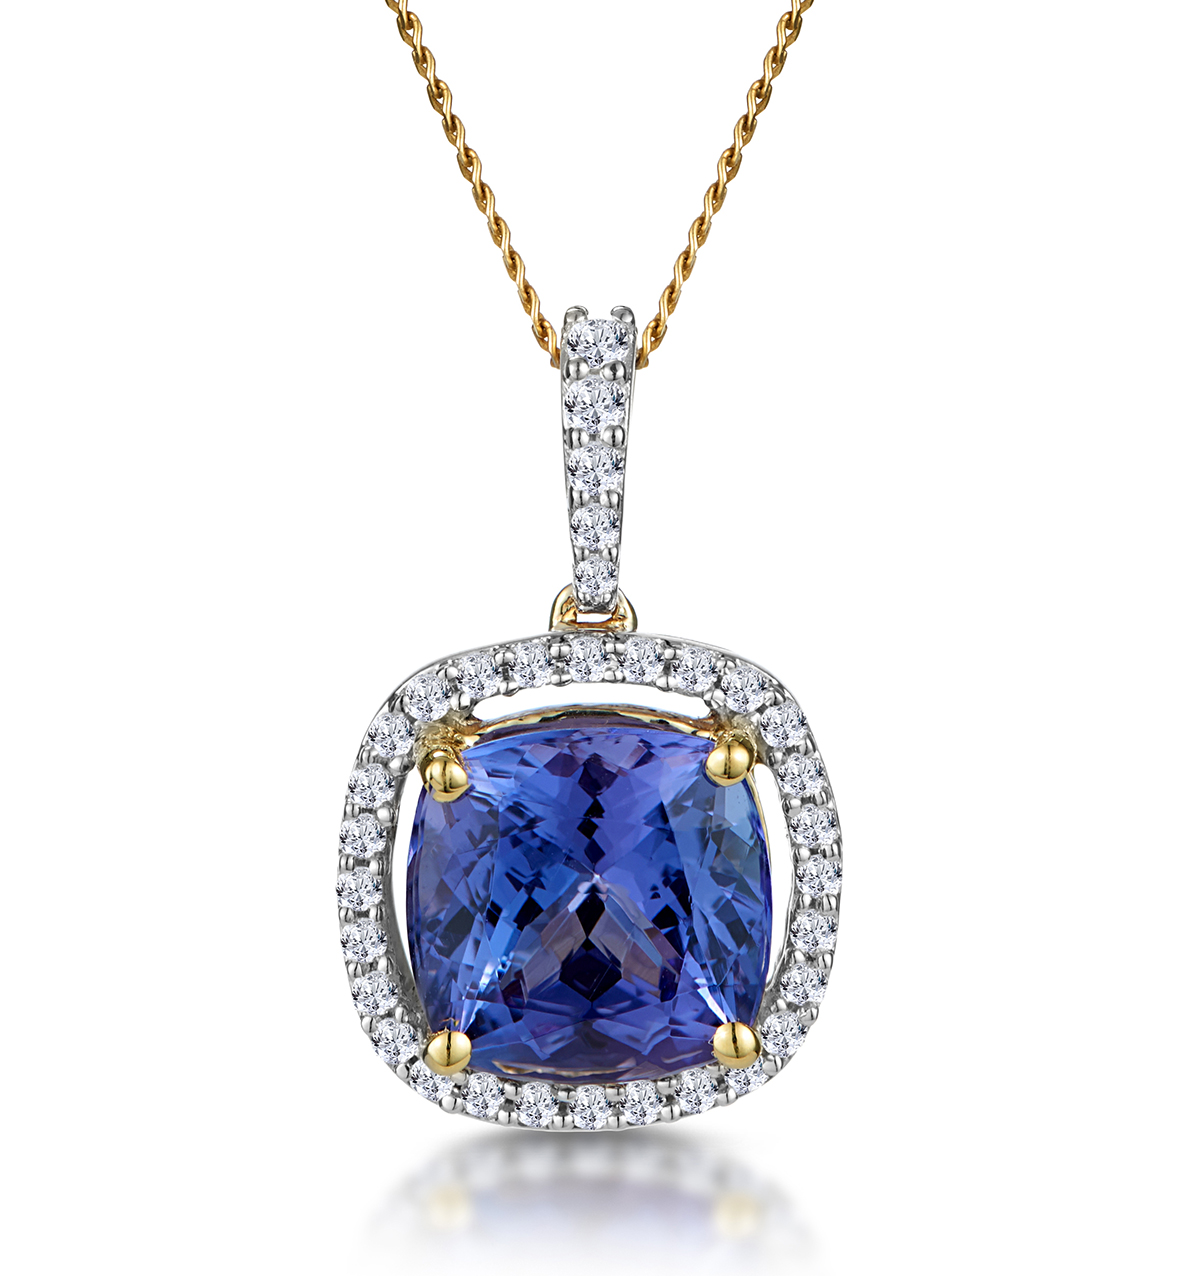 2CT TANZANITE AND DIAMOND HALO NECKLACE IN 18K GOLD ASTERIA COLLECTION